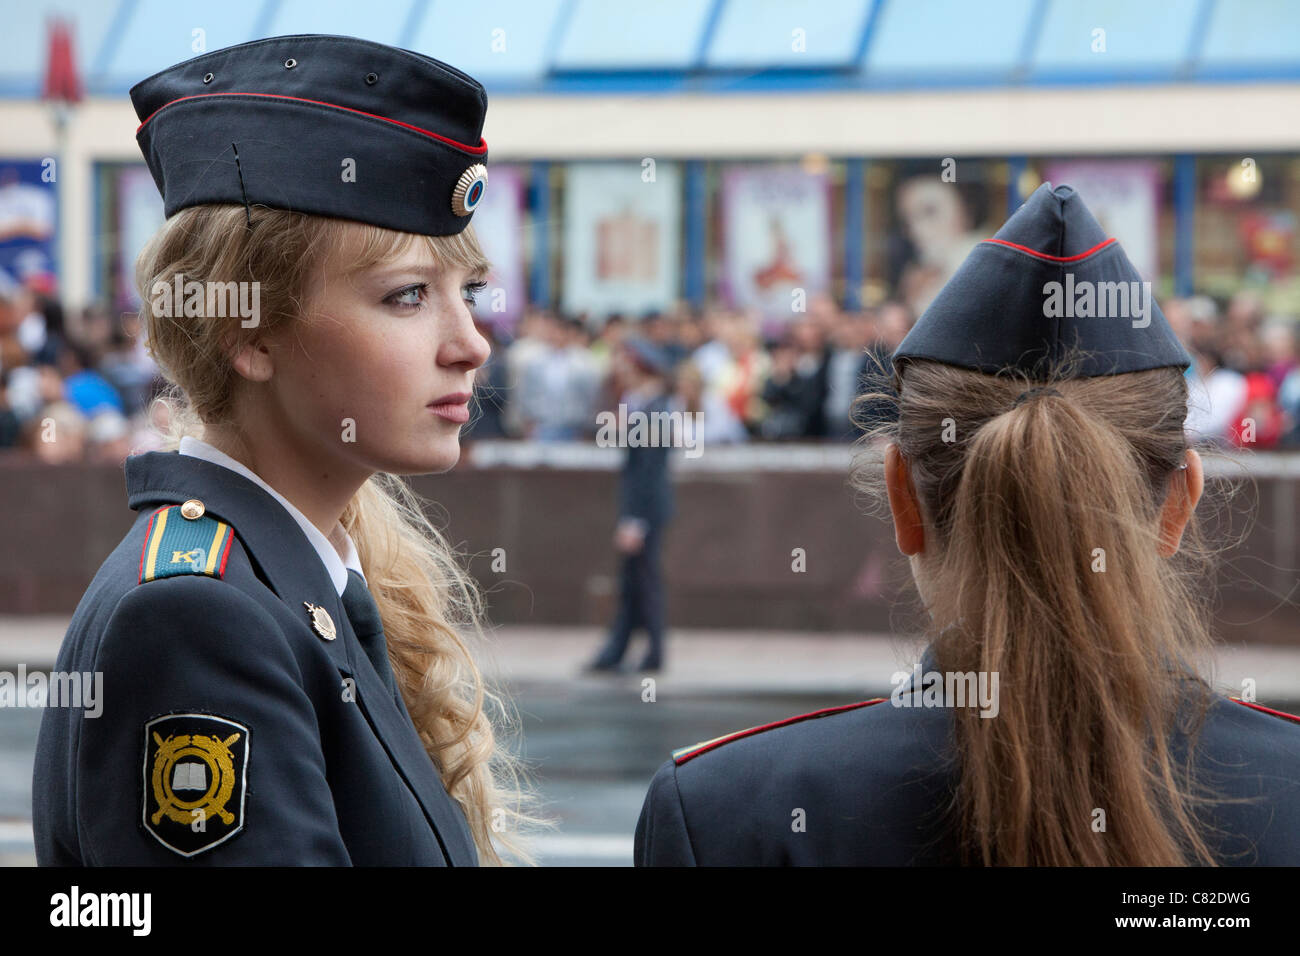 Really. agree Russian girl police outfit can